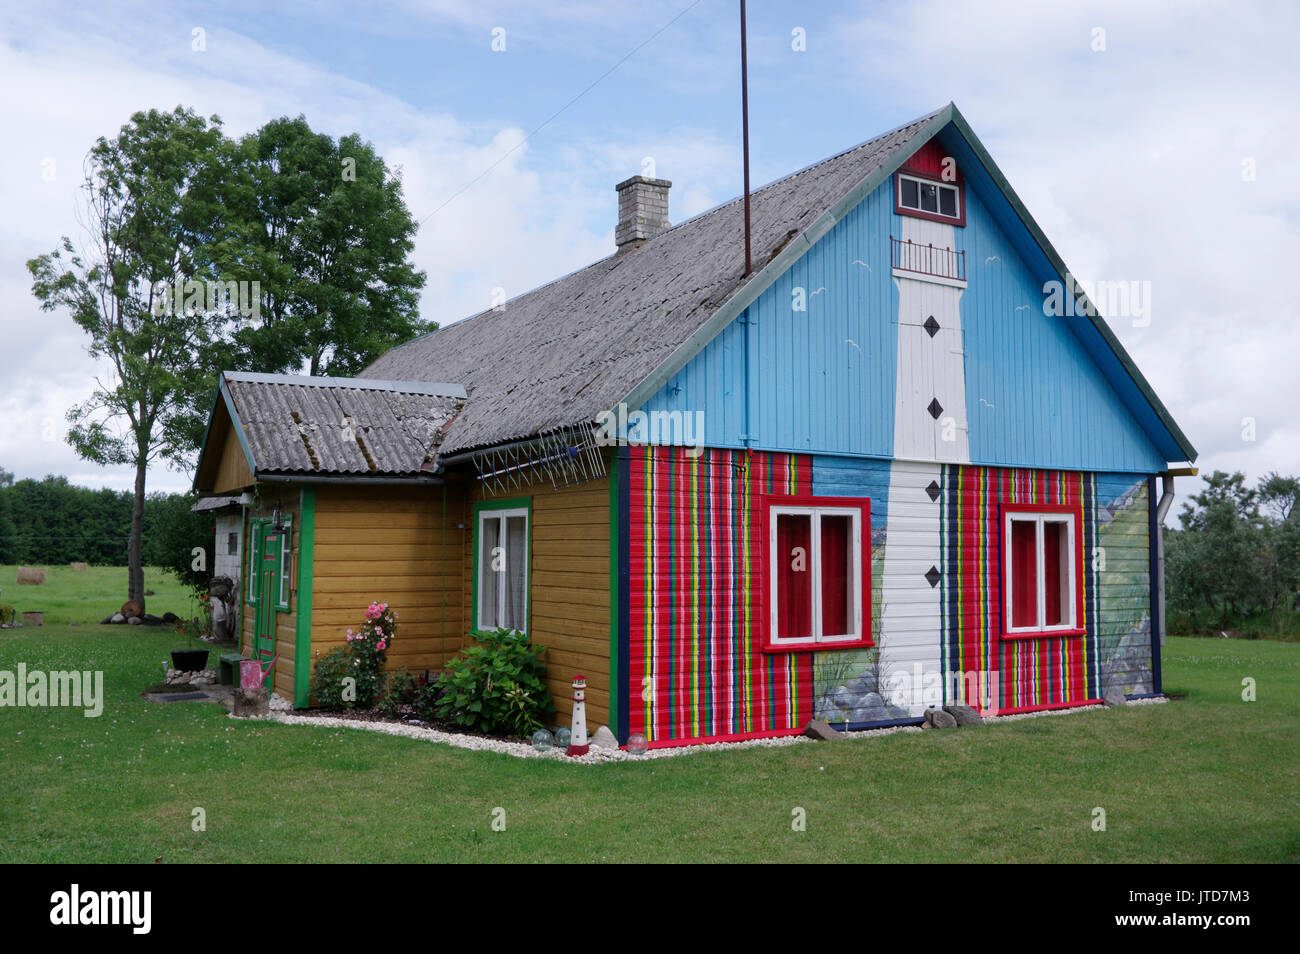 The facade of the House painted Kihnu skirt colors. Kihnu Island, Estonia 5th August 2017 - Stock Image